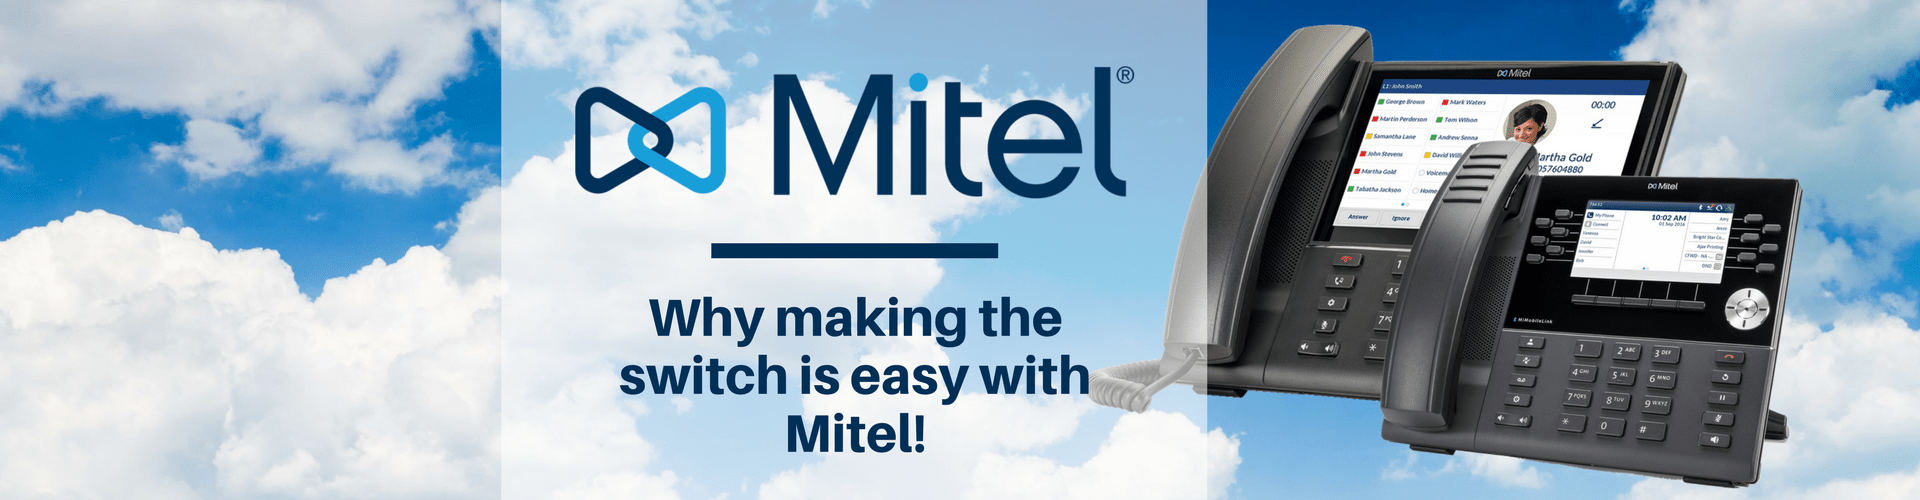 Mitel Lunch & Learn